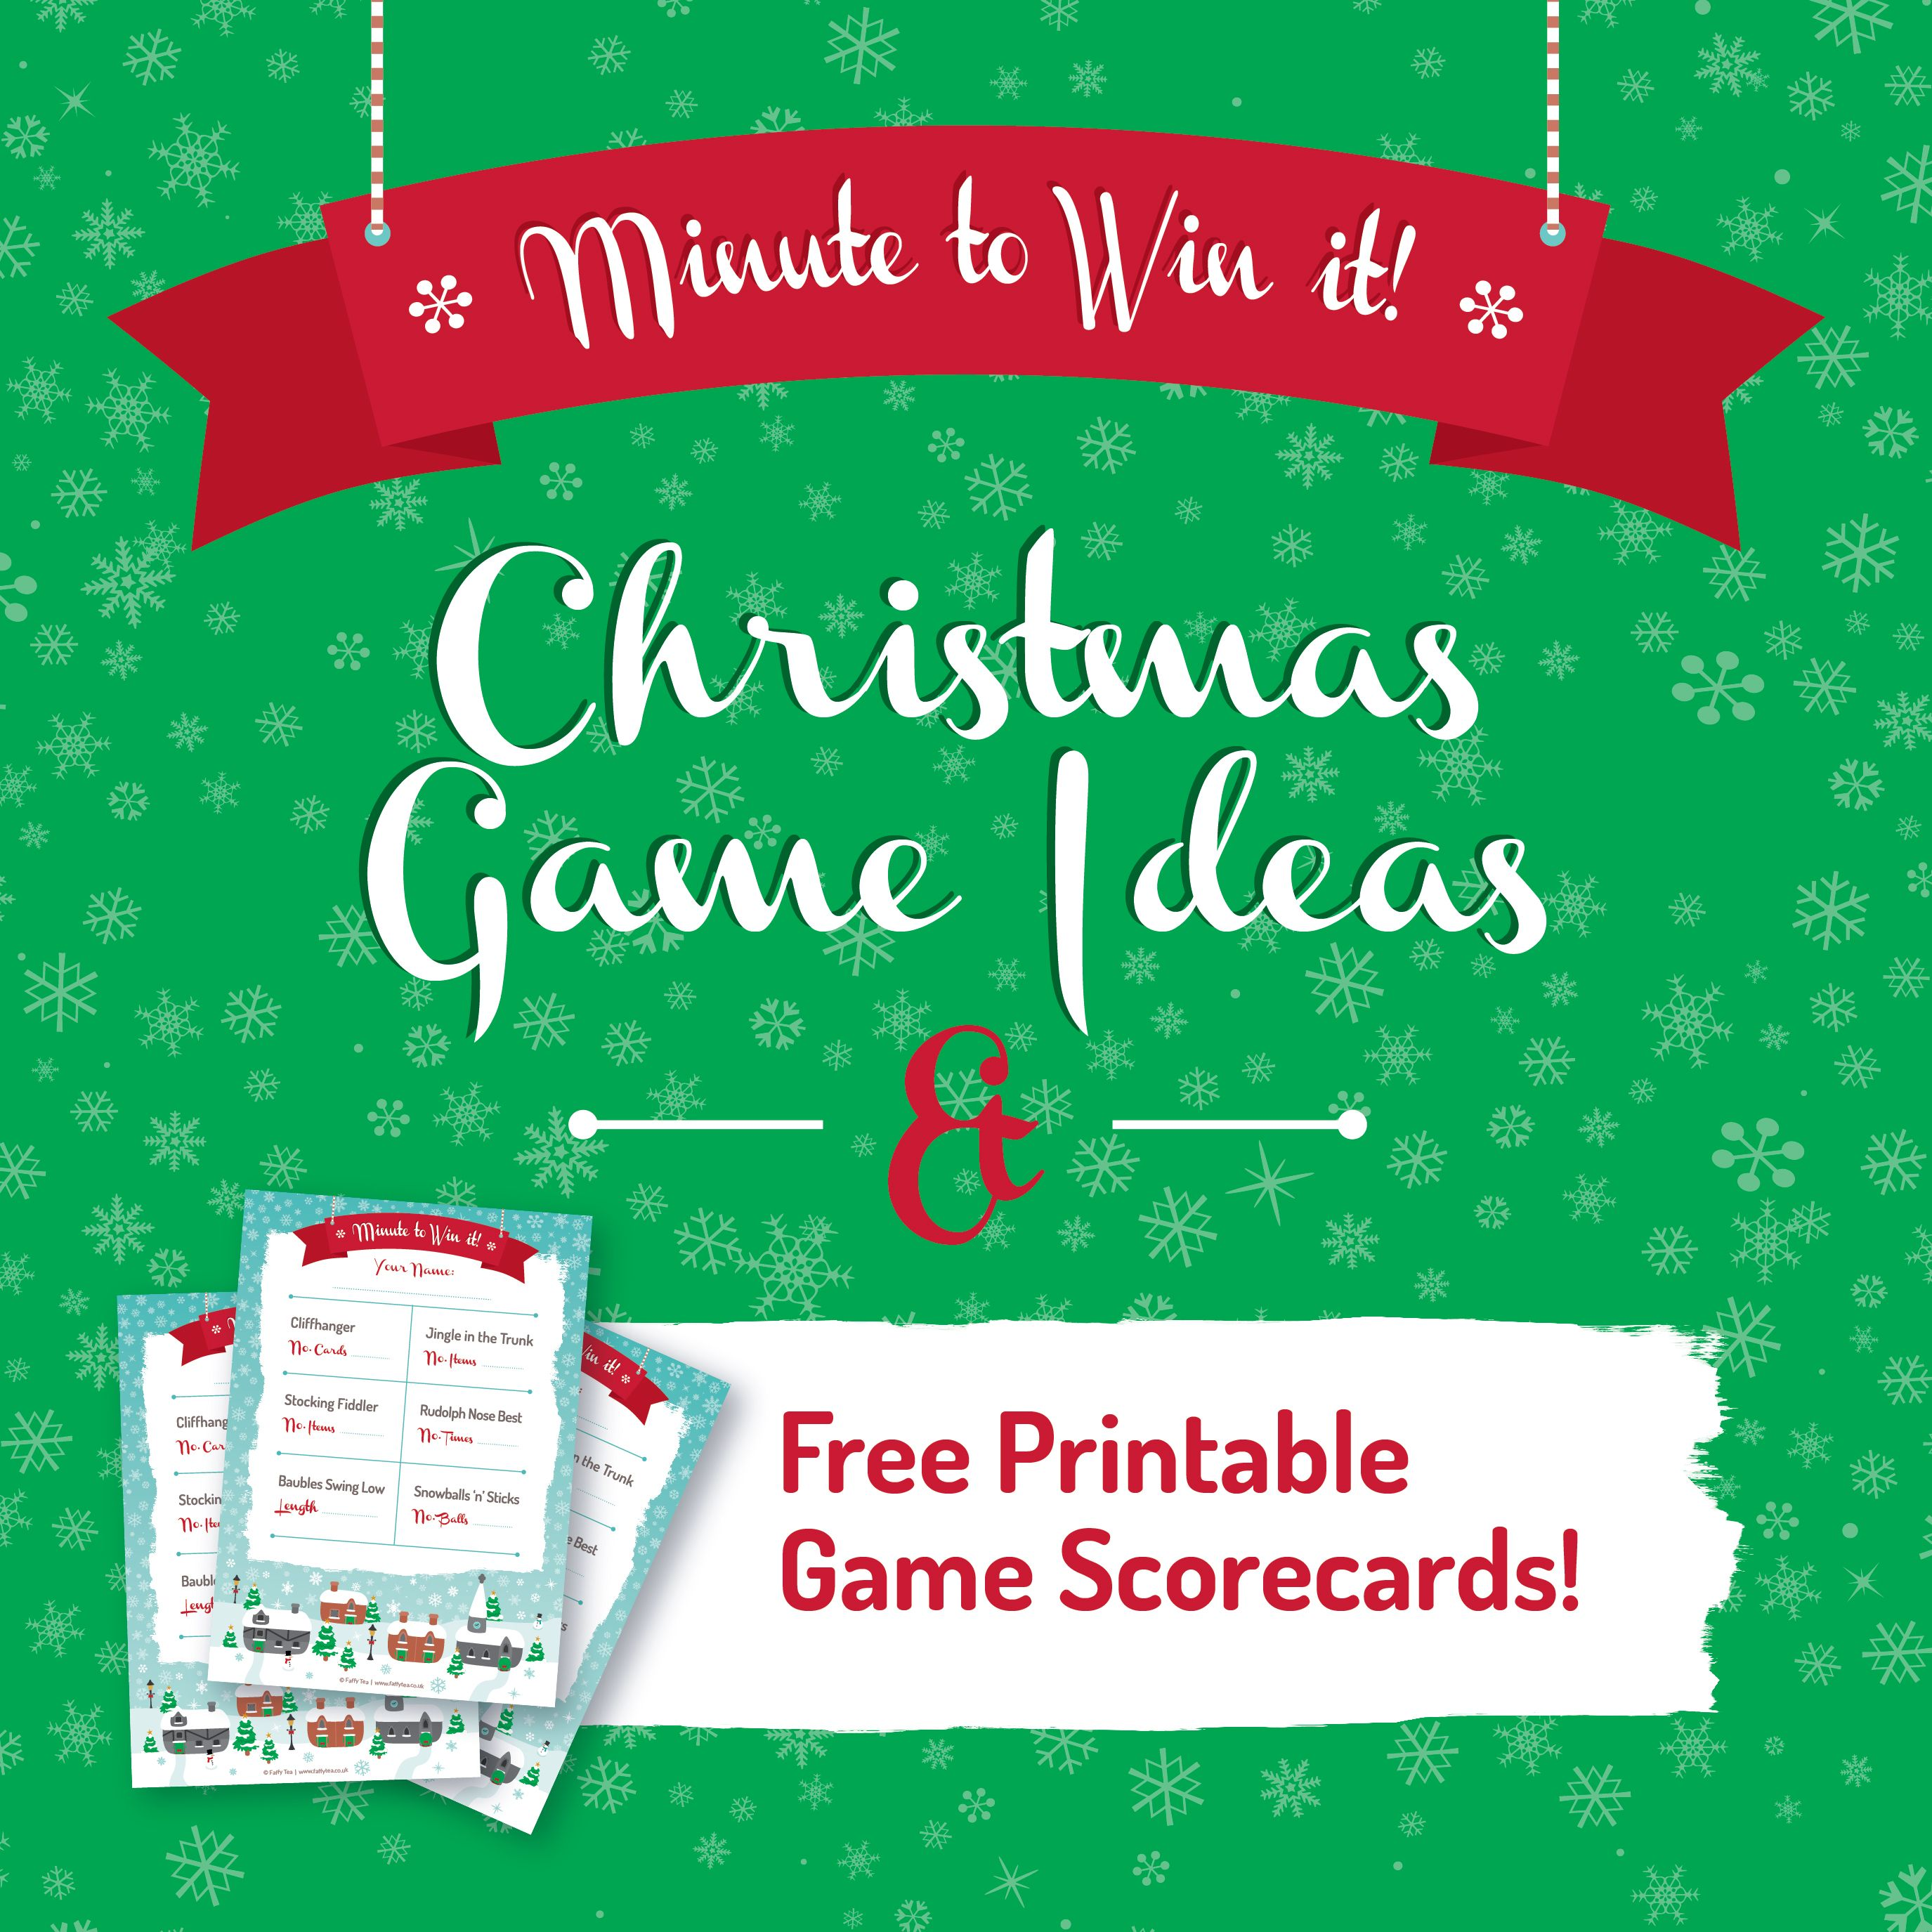 Group Games For Christmas Party: Minute To Win It Group Games Ideas